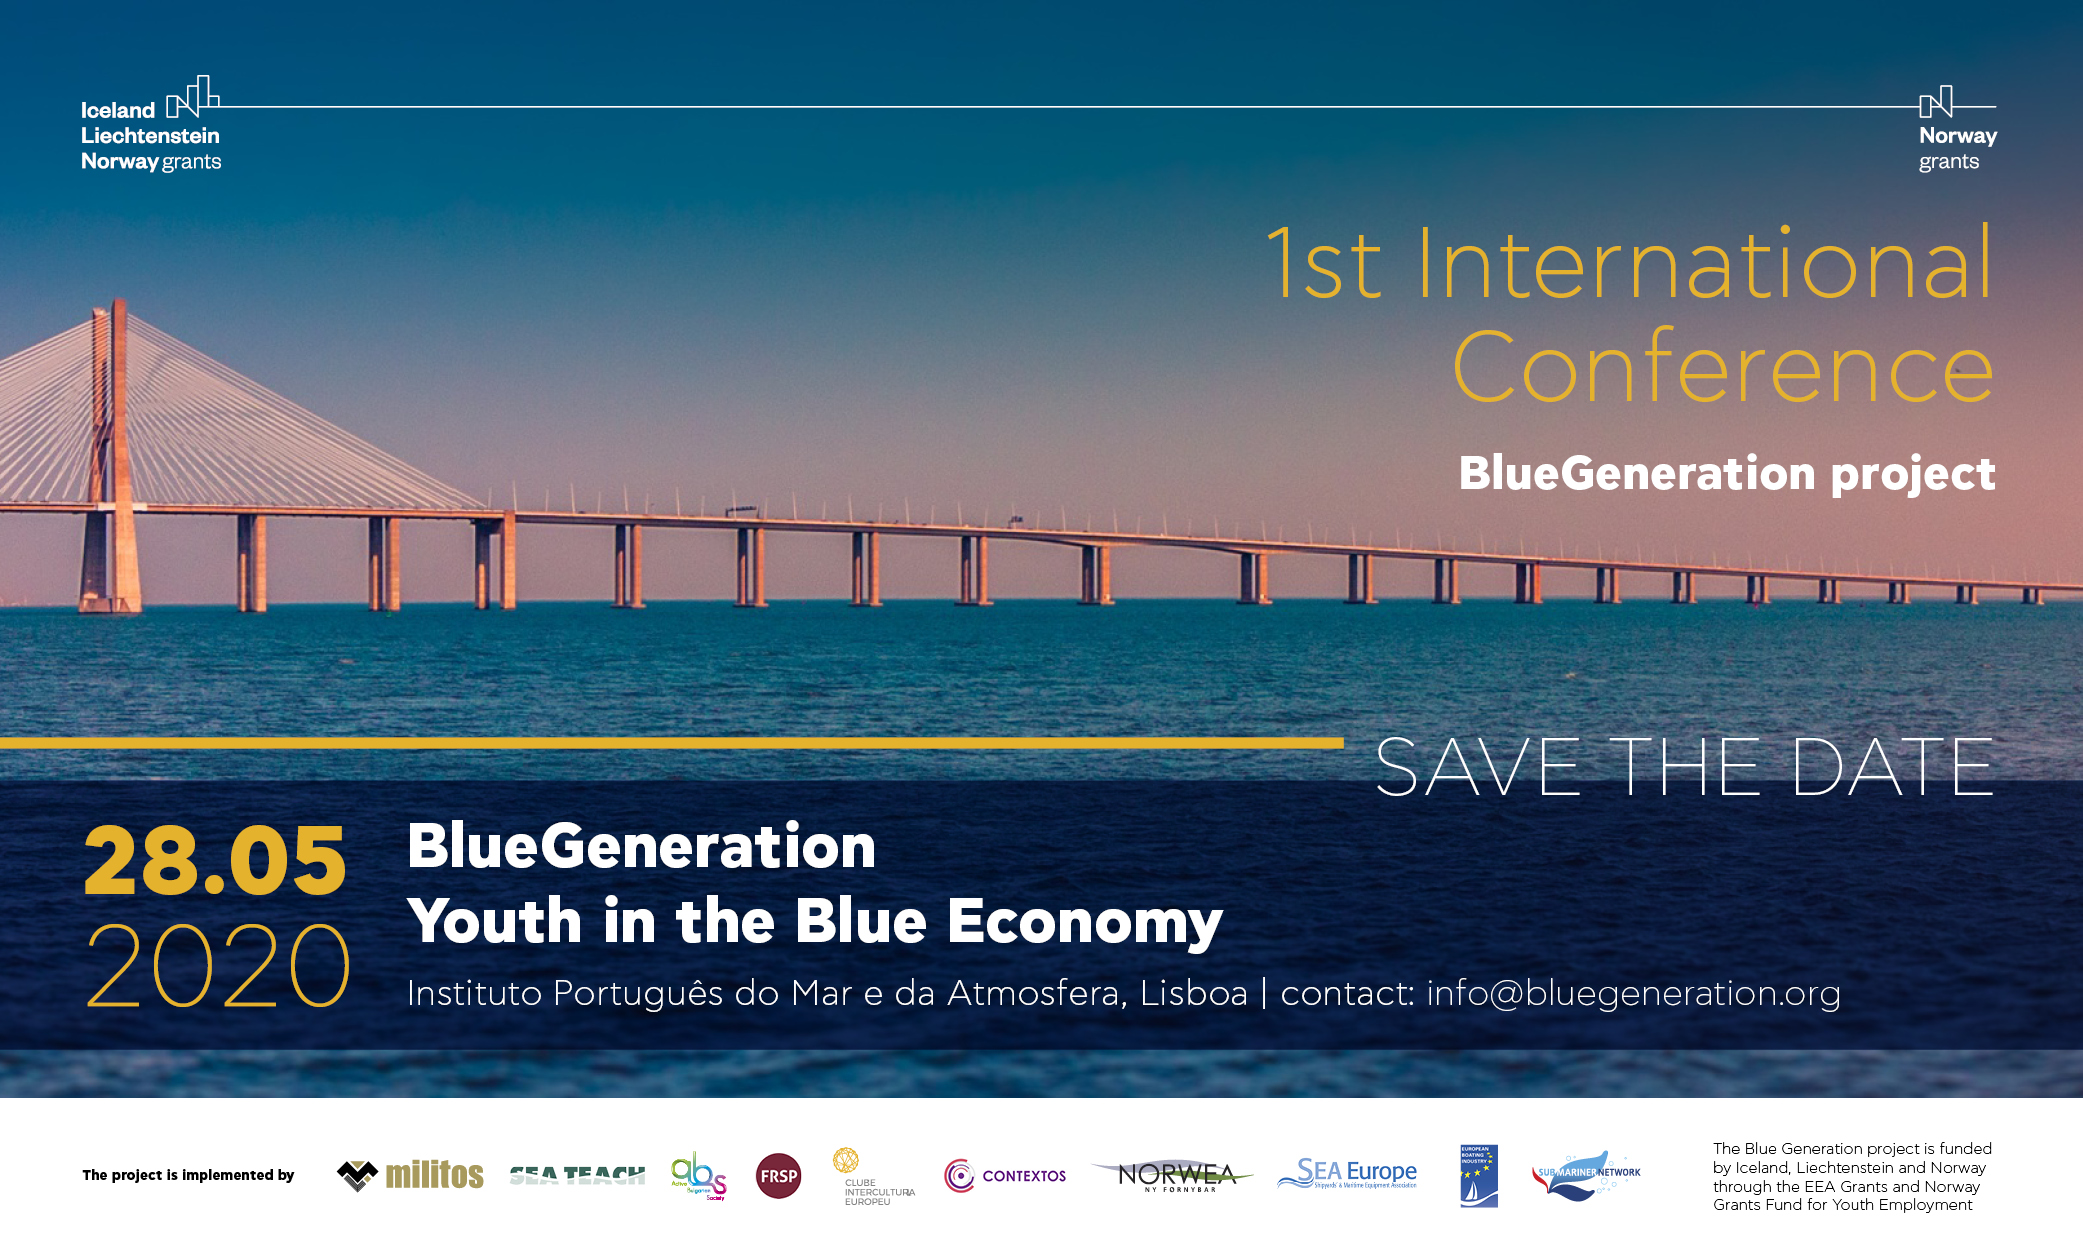 Save the Date for our International Conference in Lisbon